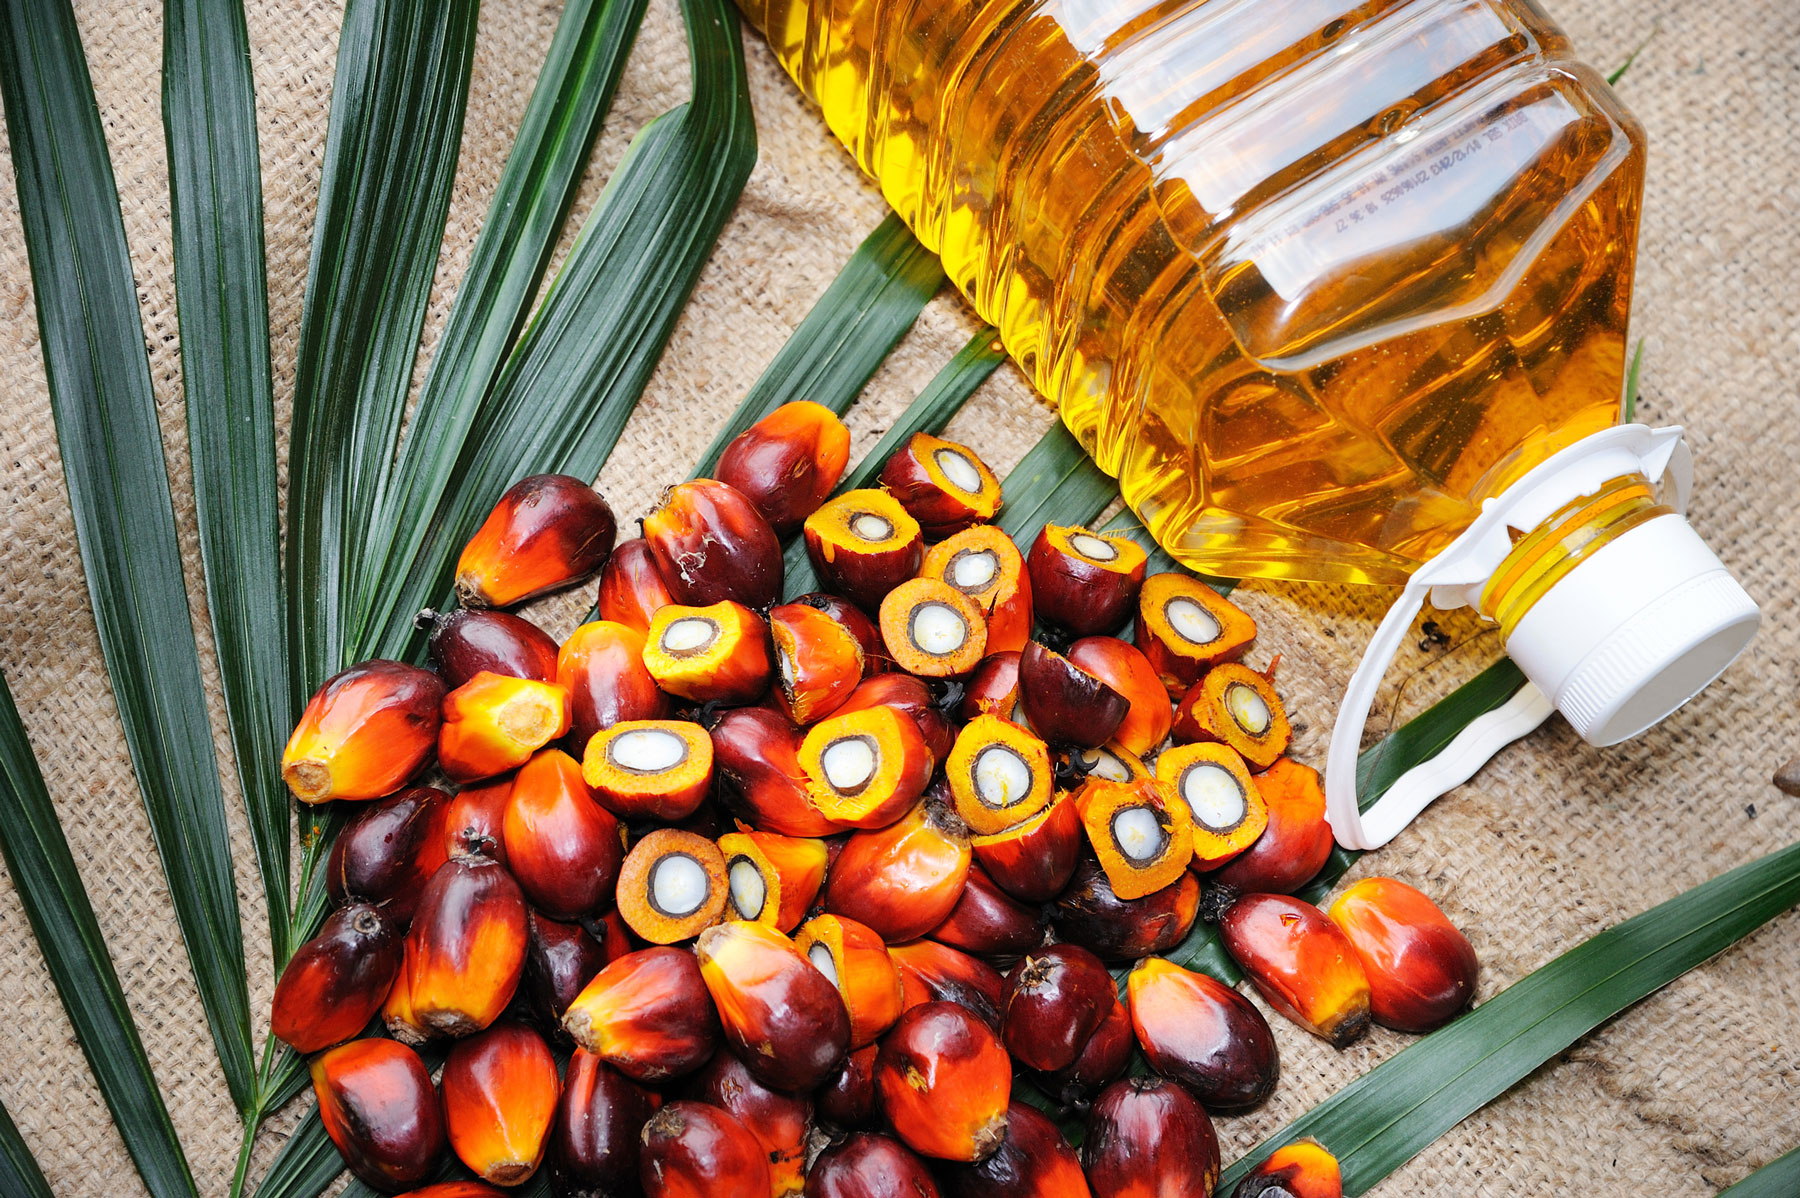 What Is Palm Oil? Is Palm Oil Bad for You? Here's What to Know